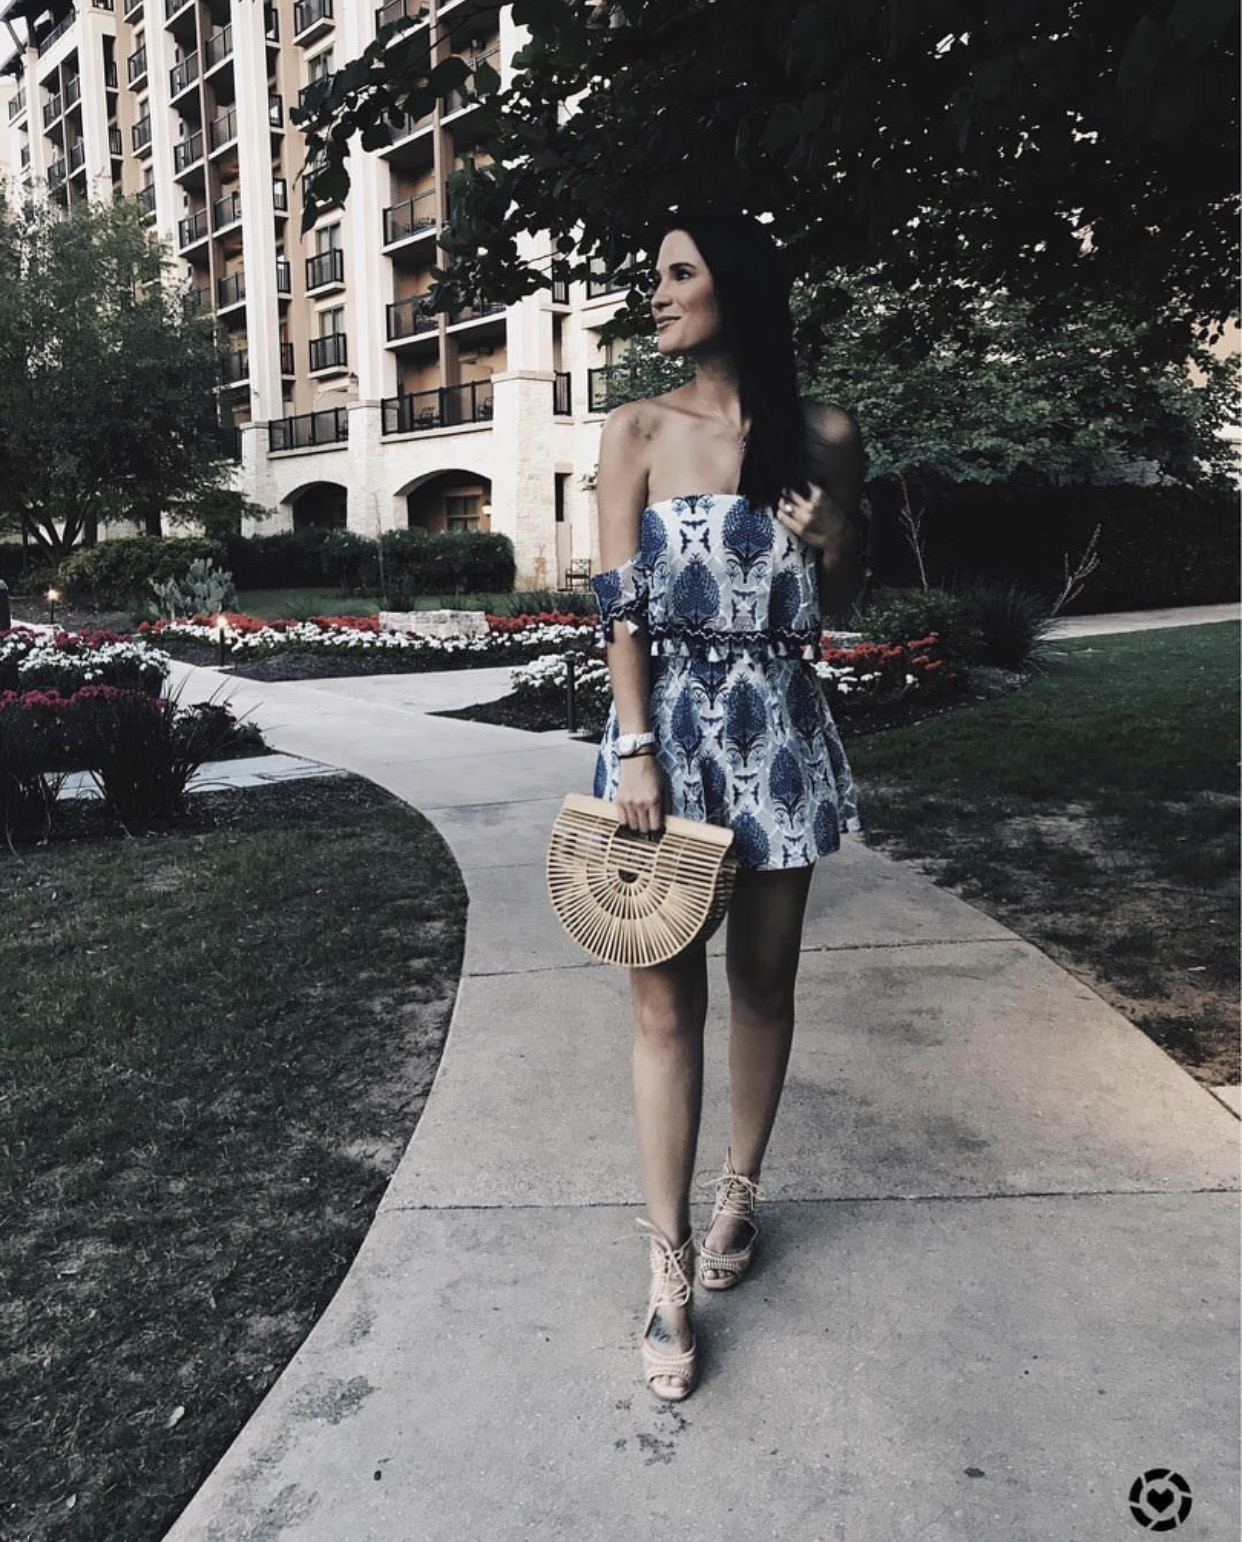 DTKAustin shares her favorite looks from her May Instagram posts over on the blog. The best of summer outfits all in one place! Click for more information and photos.   summer fashion tips   summer outfit ideas   summer style tips   what to wear for summer   warm weather fashion   fashion for summer   style tips for summer   outfit ideas for summer    Dressed to Kill